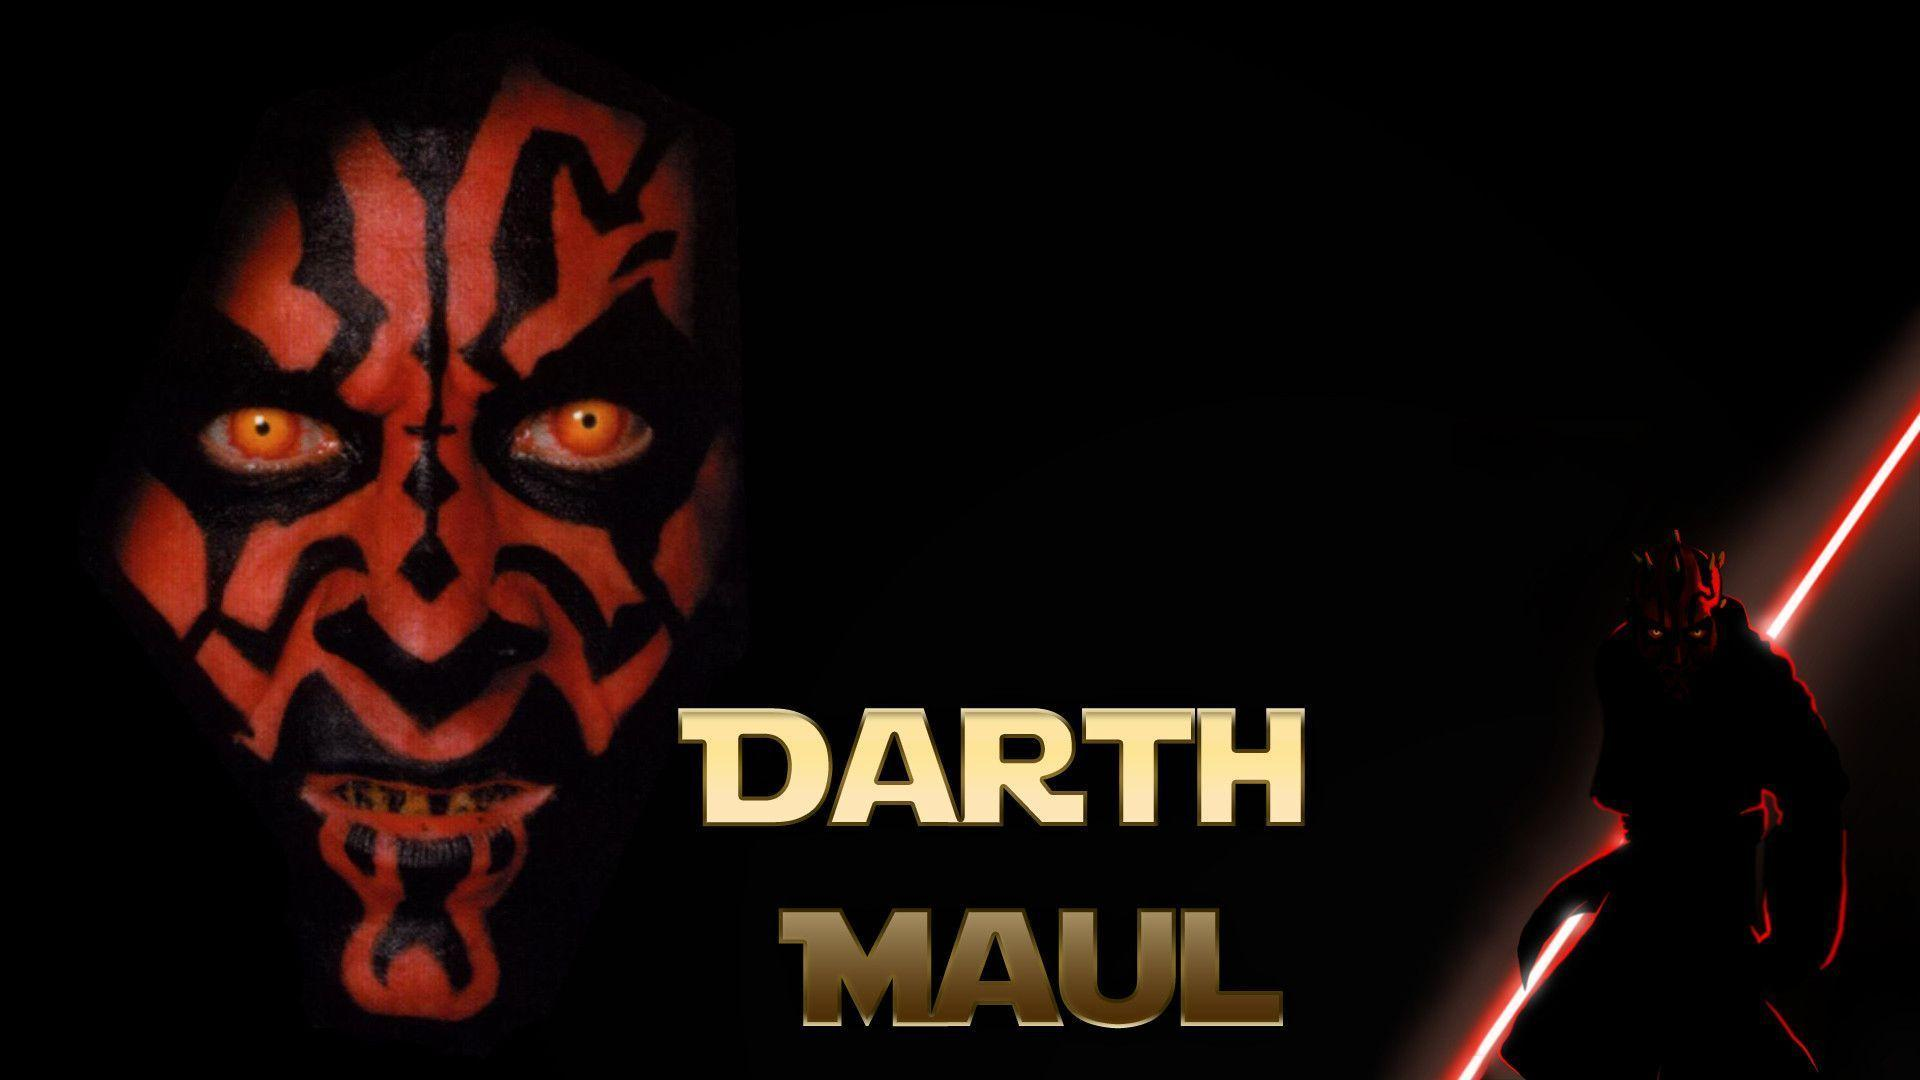 Darth Maul desktop wallpapers